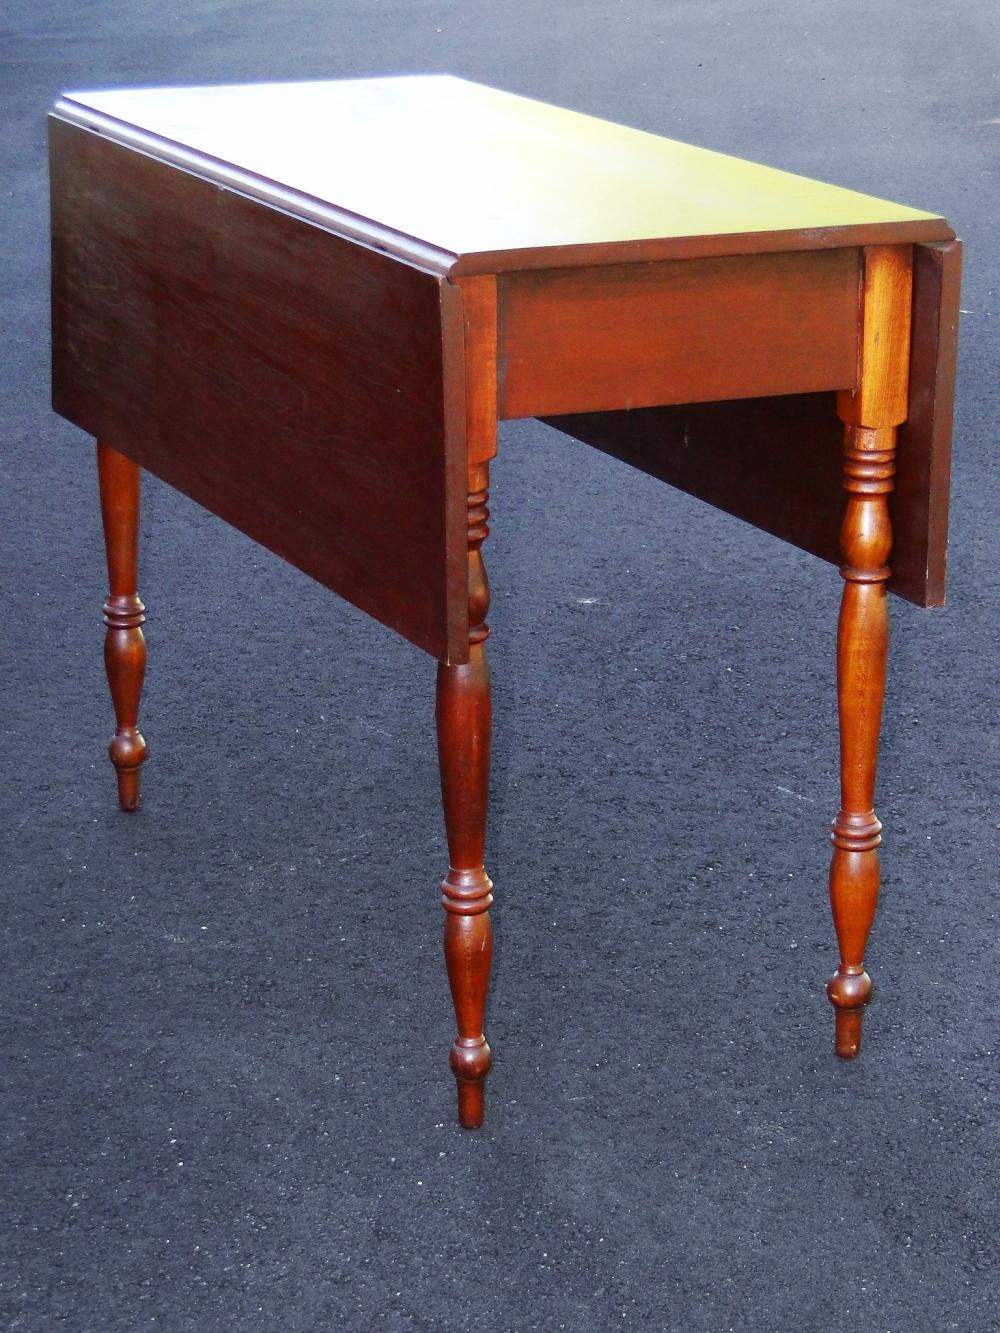 SHERATON PERIOD DROPLEAF TABLE